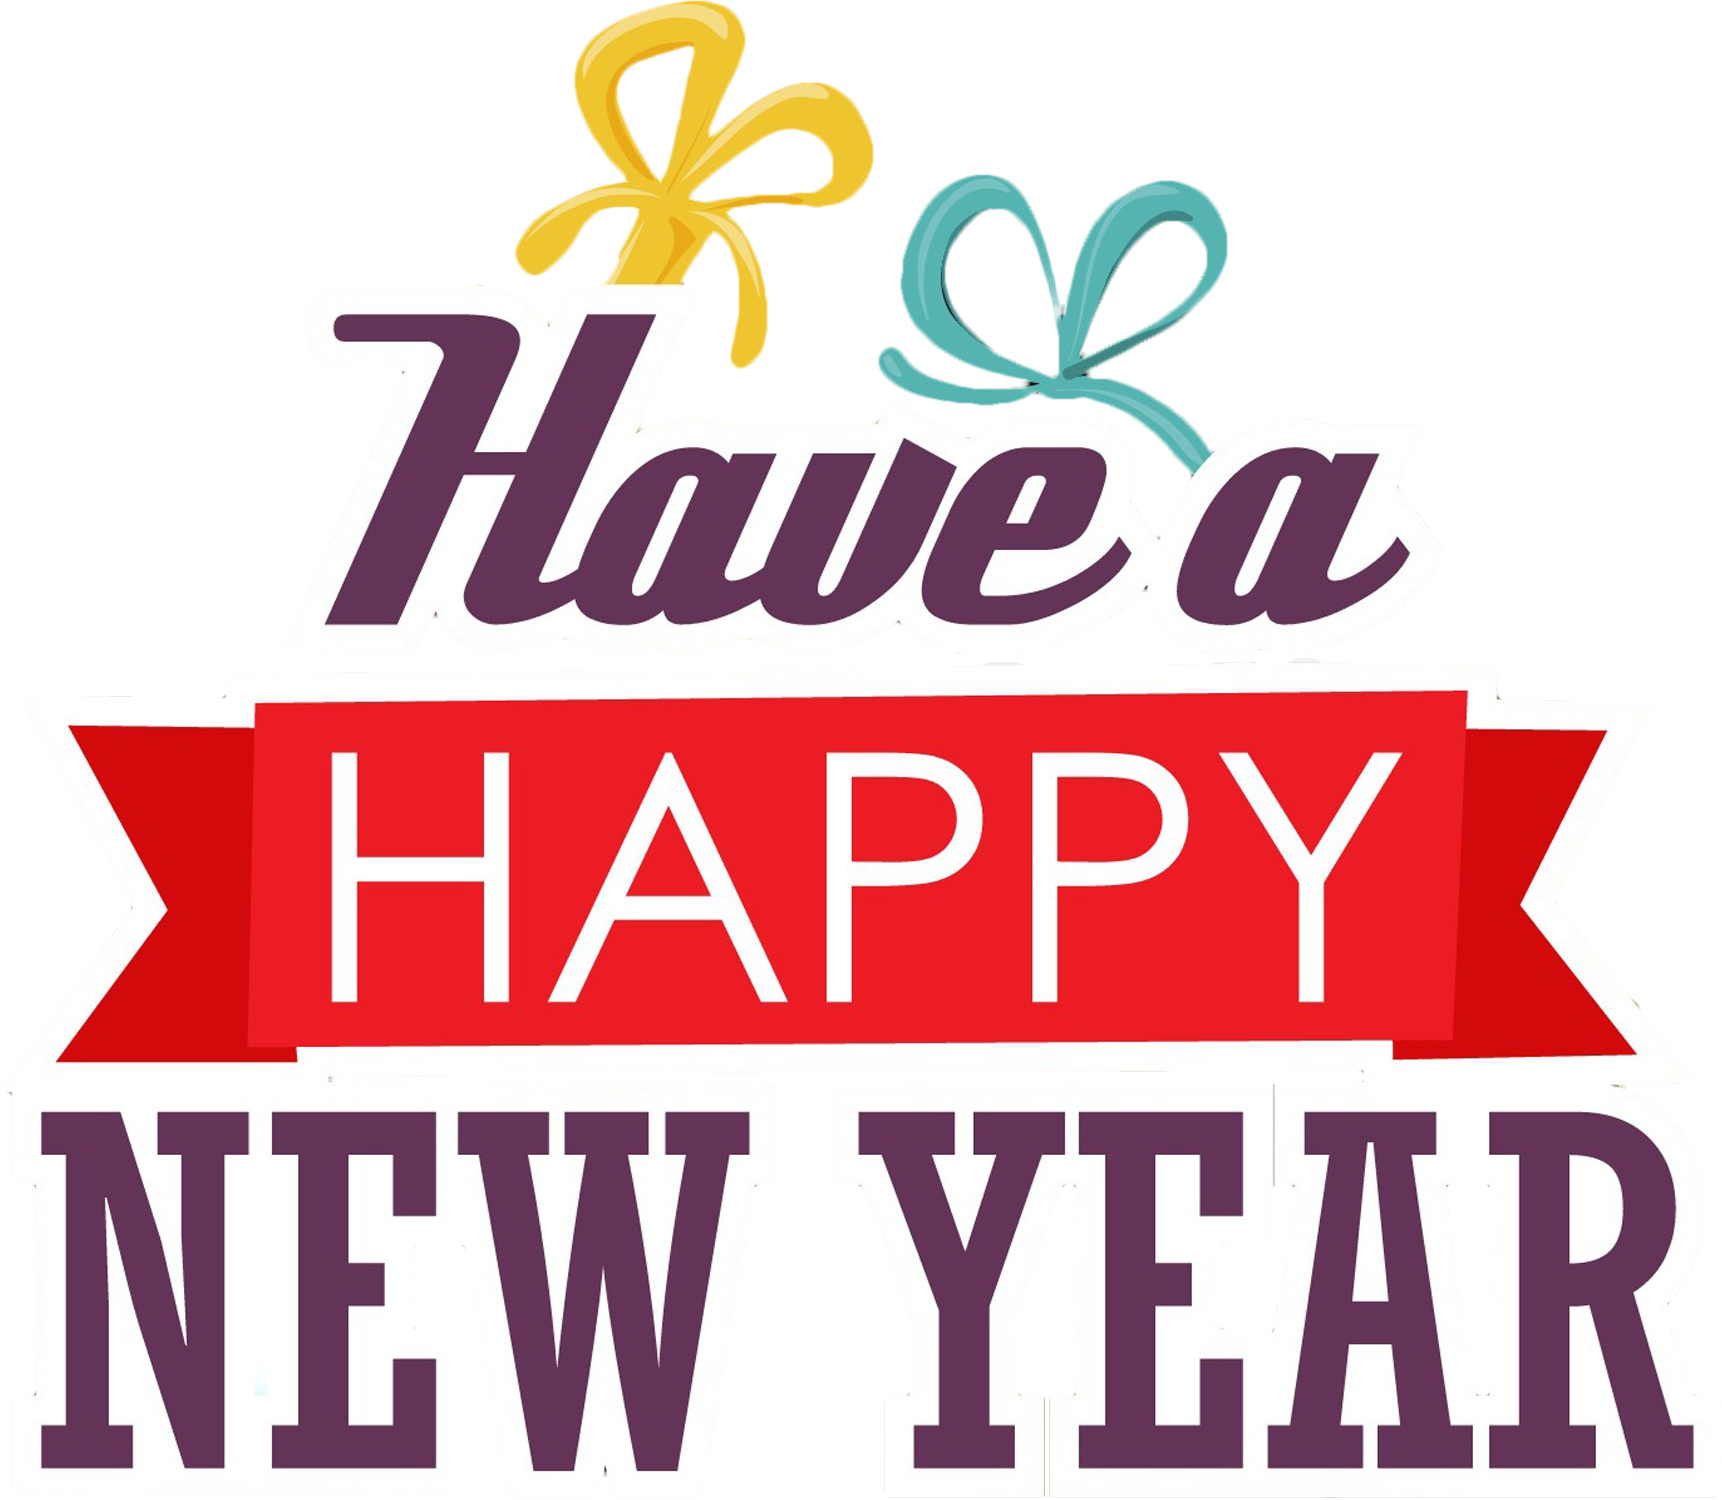 Free Have a Happy New Year Text PNG Image.